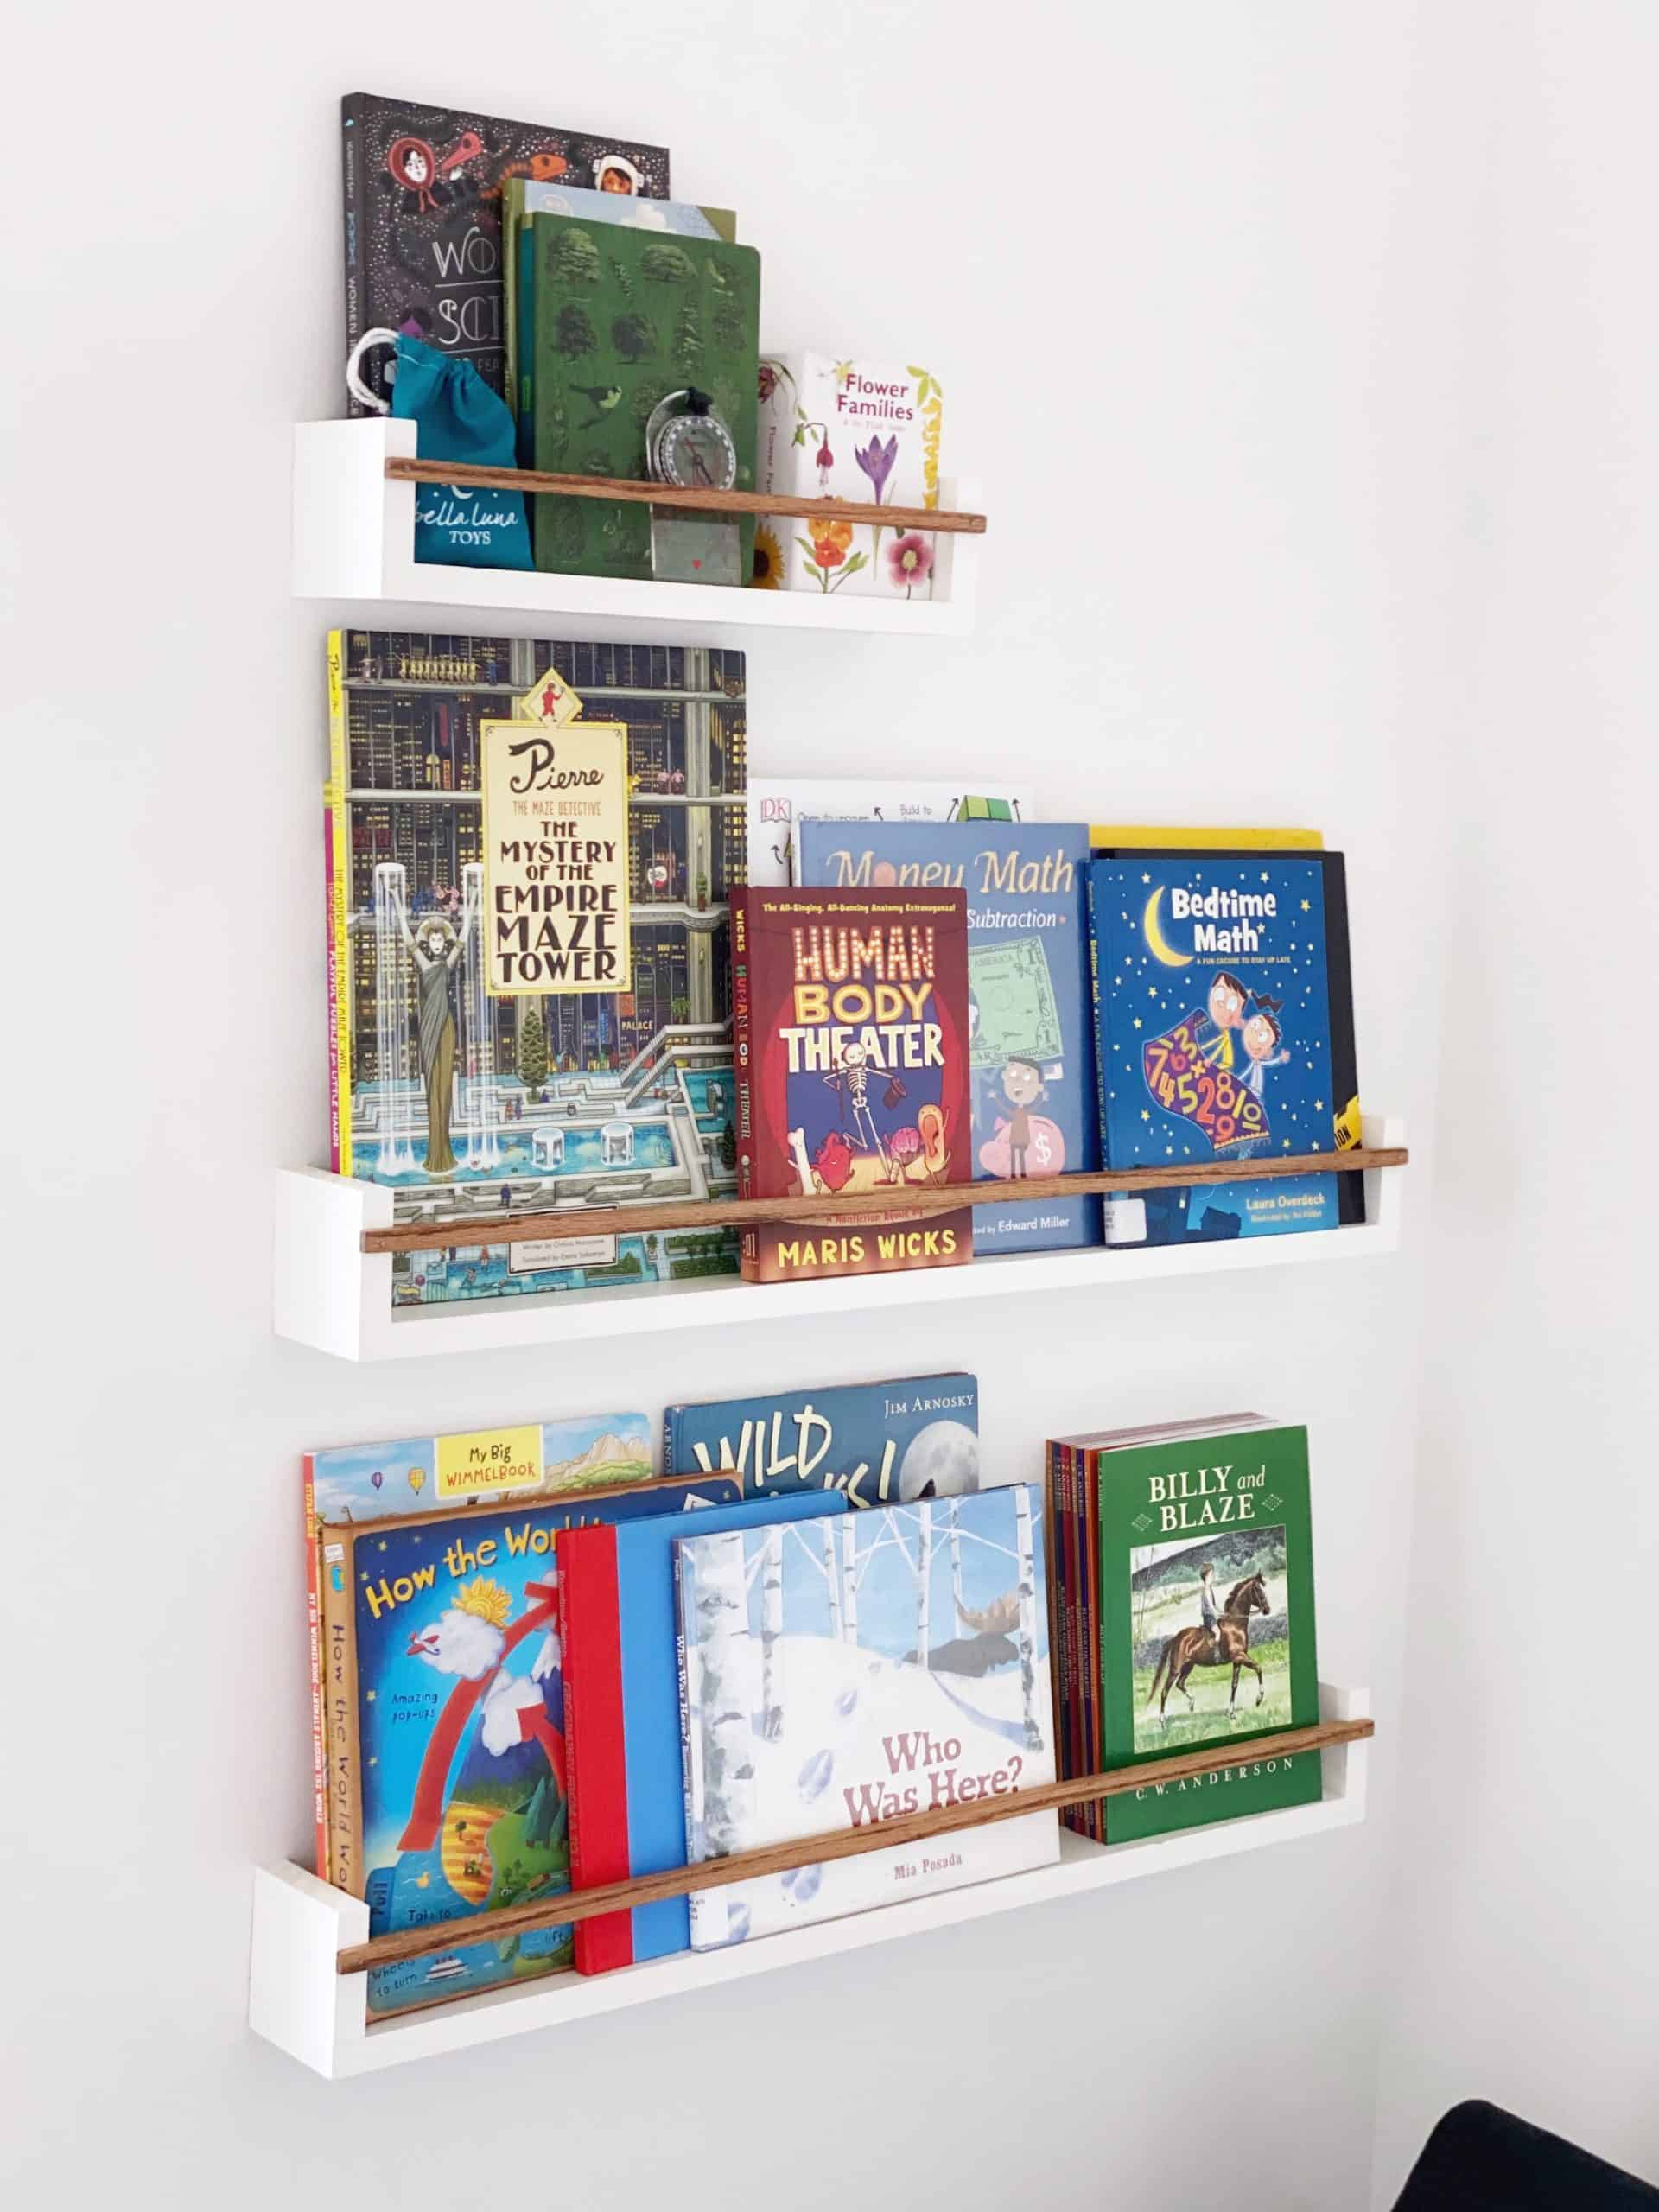 Entice your kids to read more books by displaying them forward-facing! Learn how to build these modern and minimalist floating bookshelves by visiting www.freeandunfettered.com. #modernfarmhouse #showmeyourstyled #montessoriathome #montessoriathome #raisingreaders